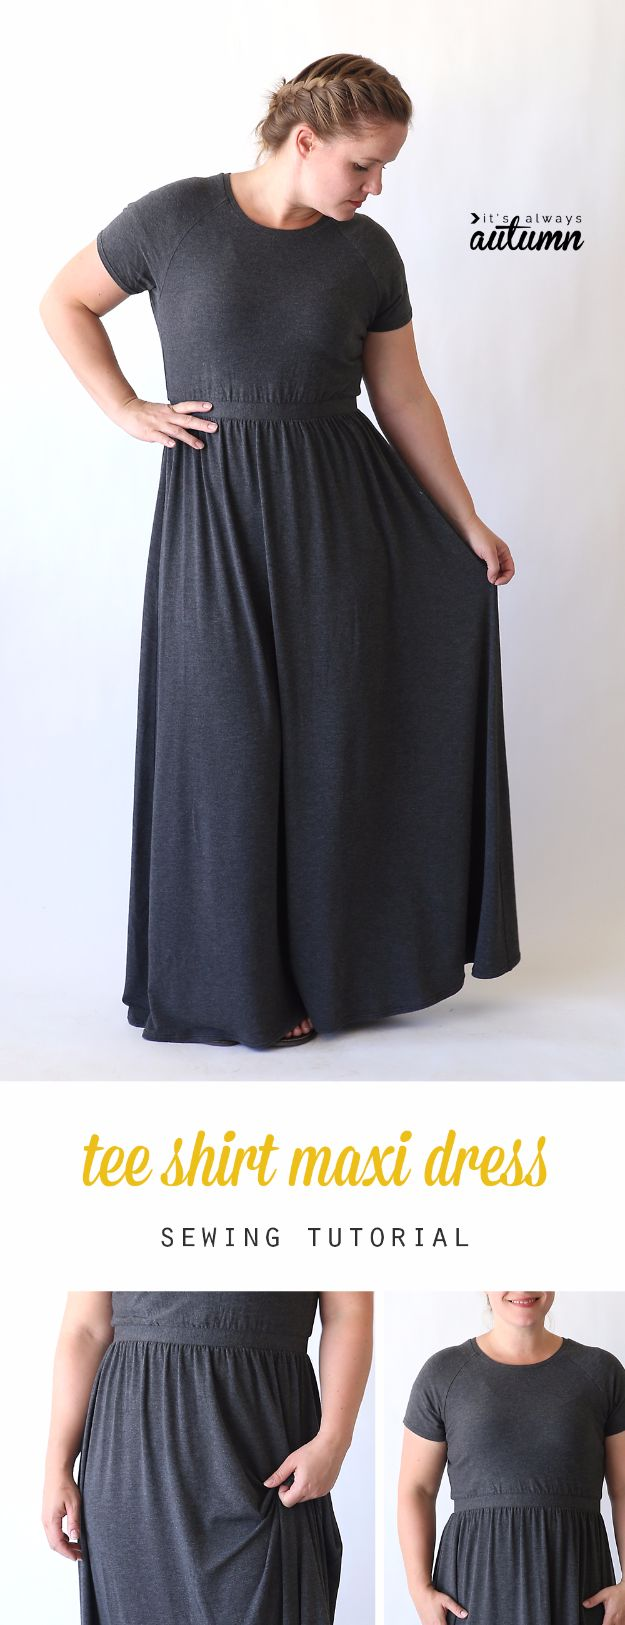 DIY Fashion for Spring - Raglan Tee Maxi Dress - Easy Homemade Clothing Tutorials and Things To Make To Wear - Cute Patterns and Projects for Women to Make, T-Shirts, Skirts, Dresses, Shorts and Ideas for Jeans and Pants - Tops, Tanks and Tees With Free Tutorial Ideas and Instructions http://diyjoy.com/fashion-for-spring